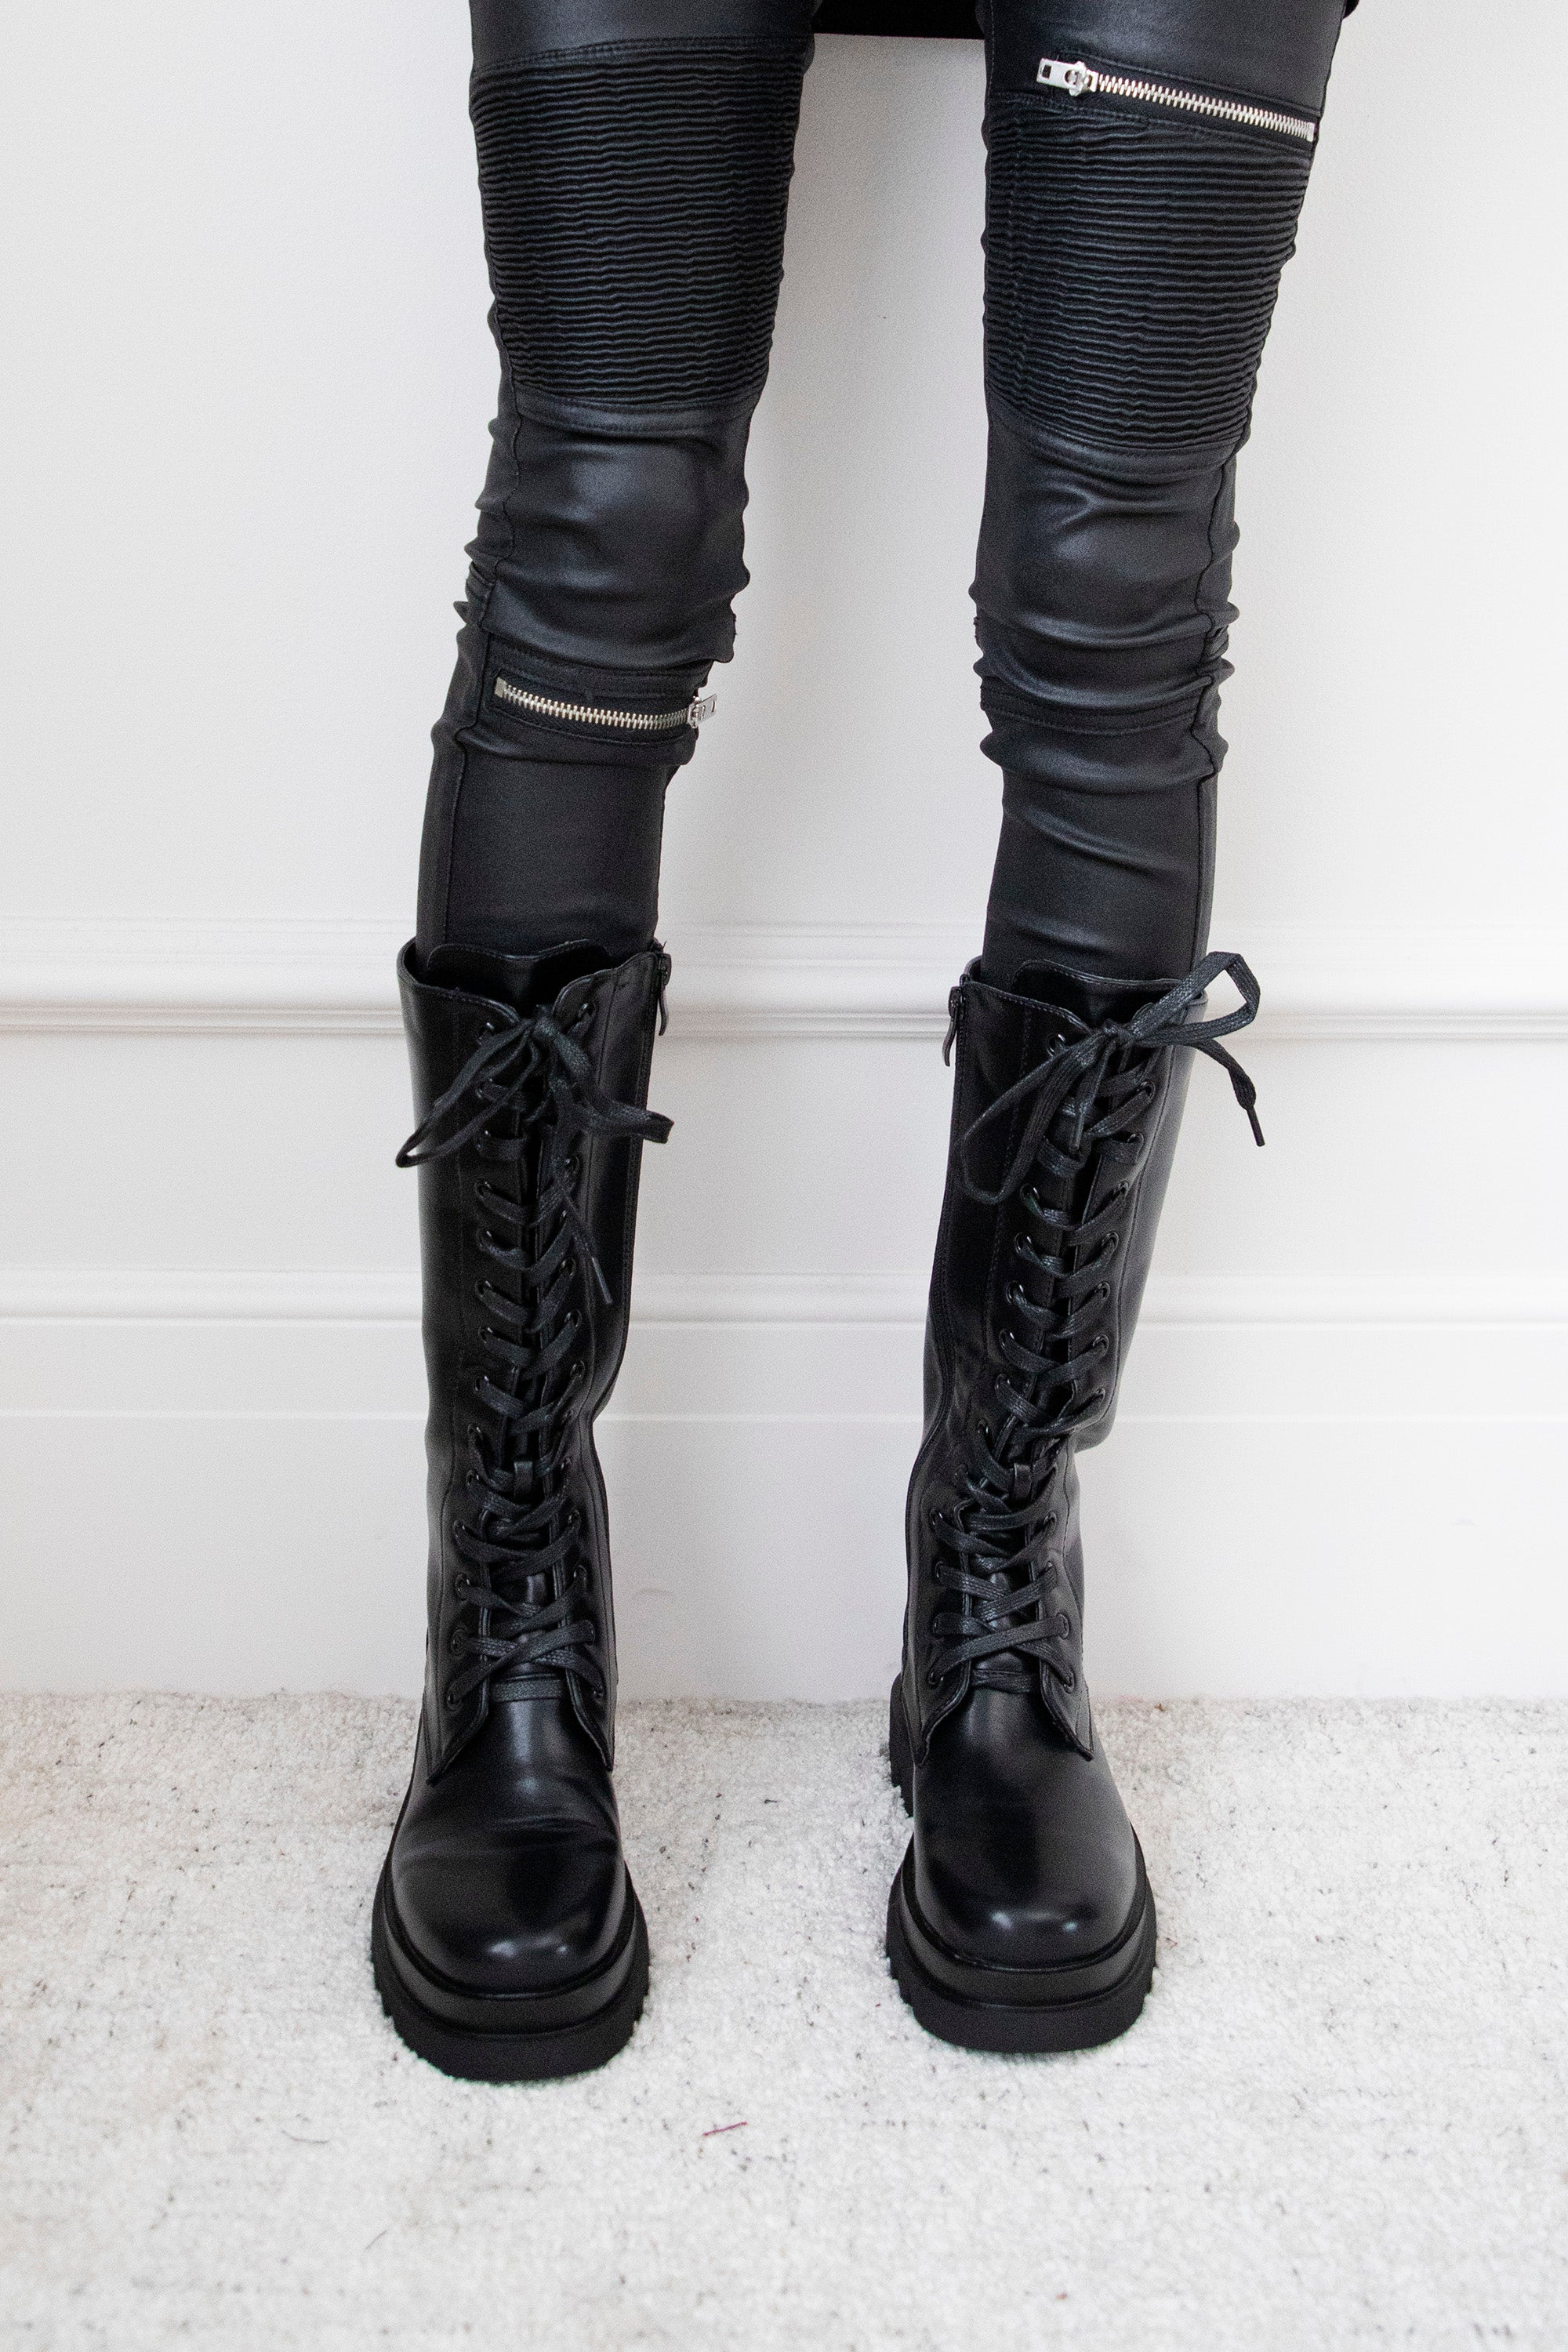 High Lace-Up Shoes Black - Boots